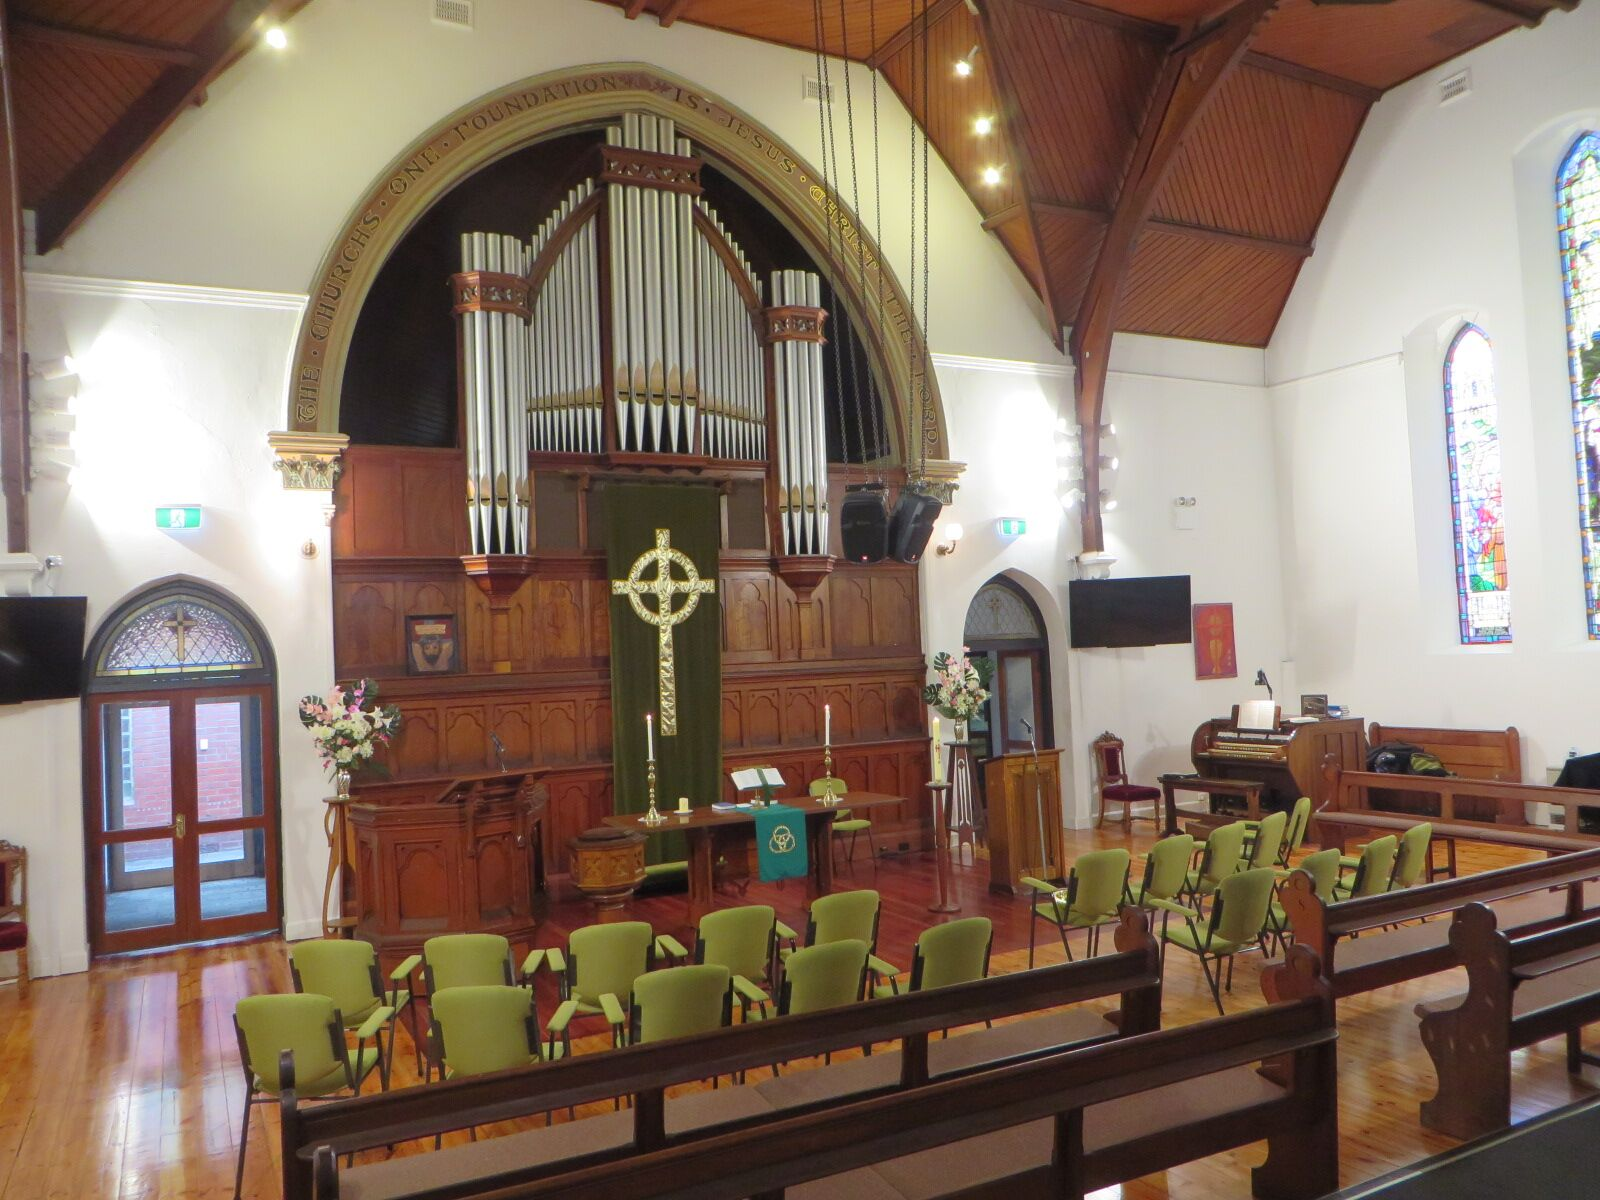 Interior of Armadale Uniting Church